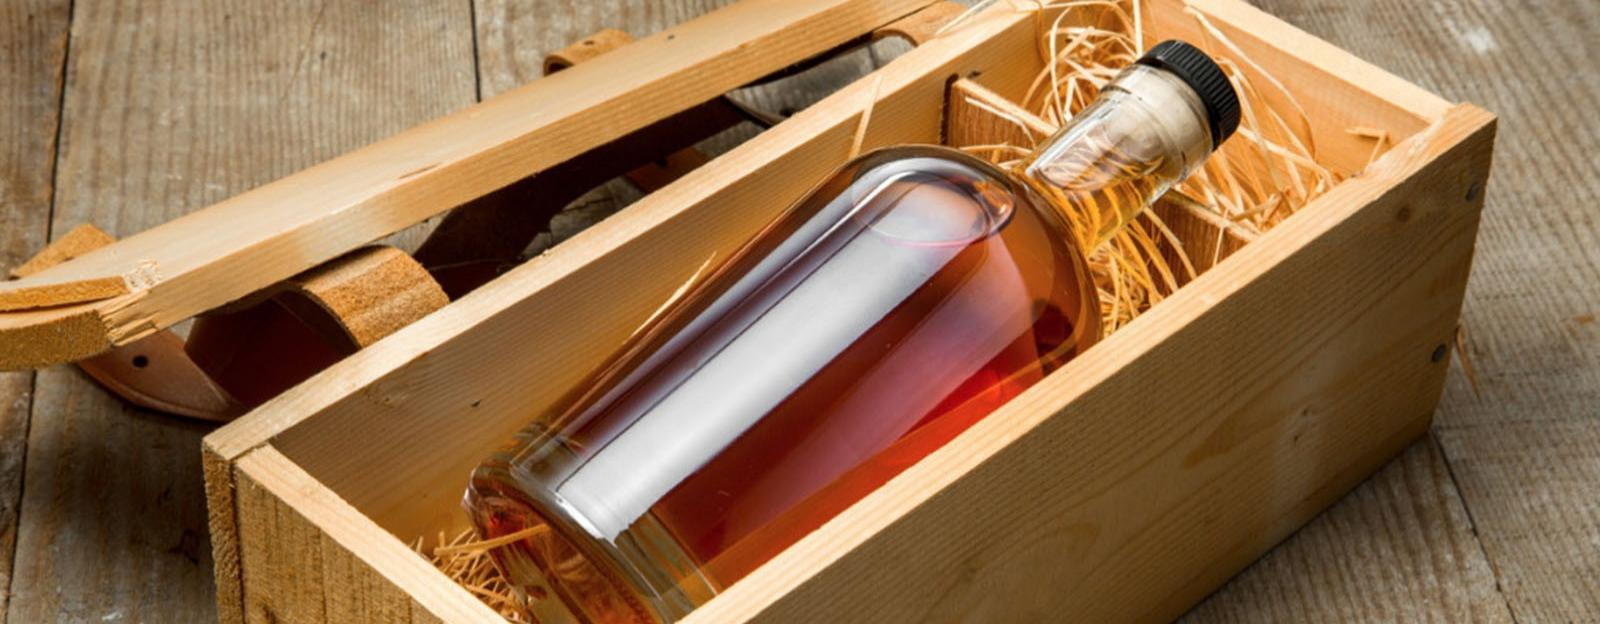 Whisky Insurance – How to Protect Your Collection